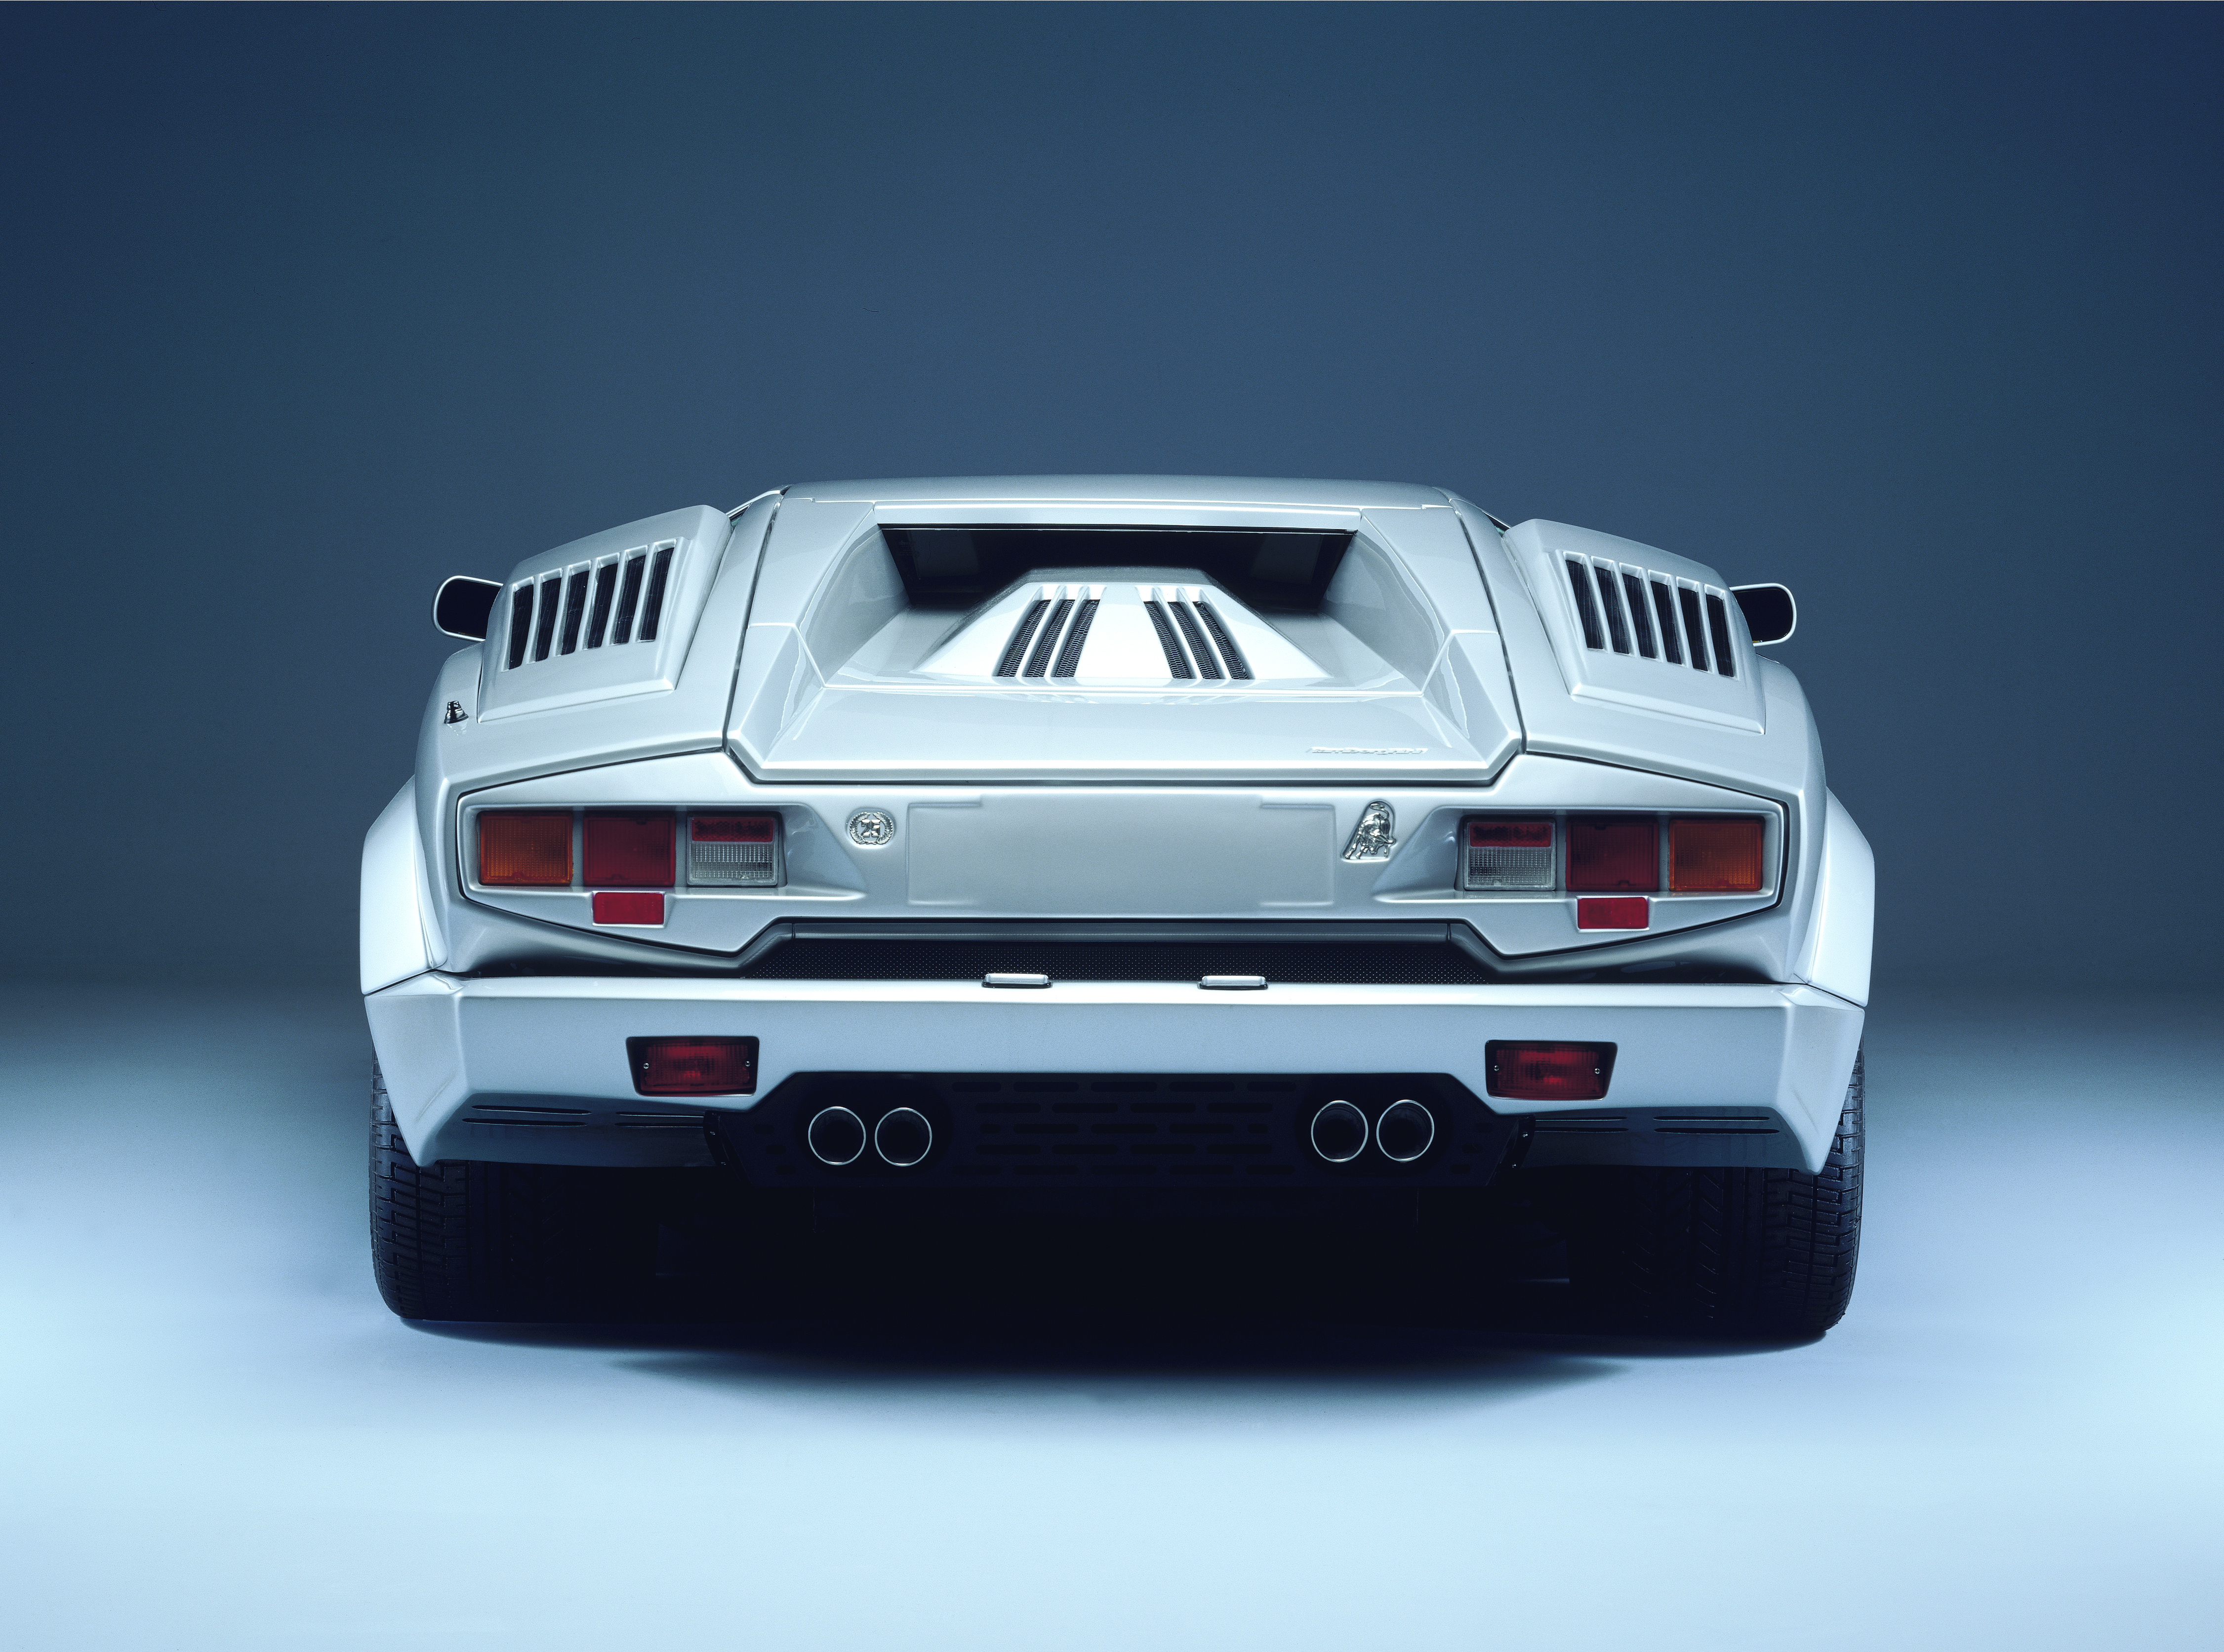 267315 Remarkable Lamborghini Countach In Real Racing 3 Cars Trend